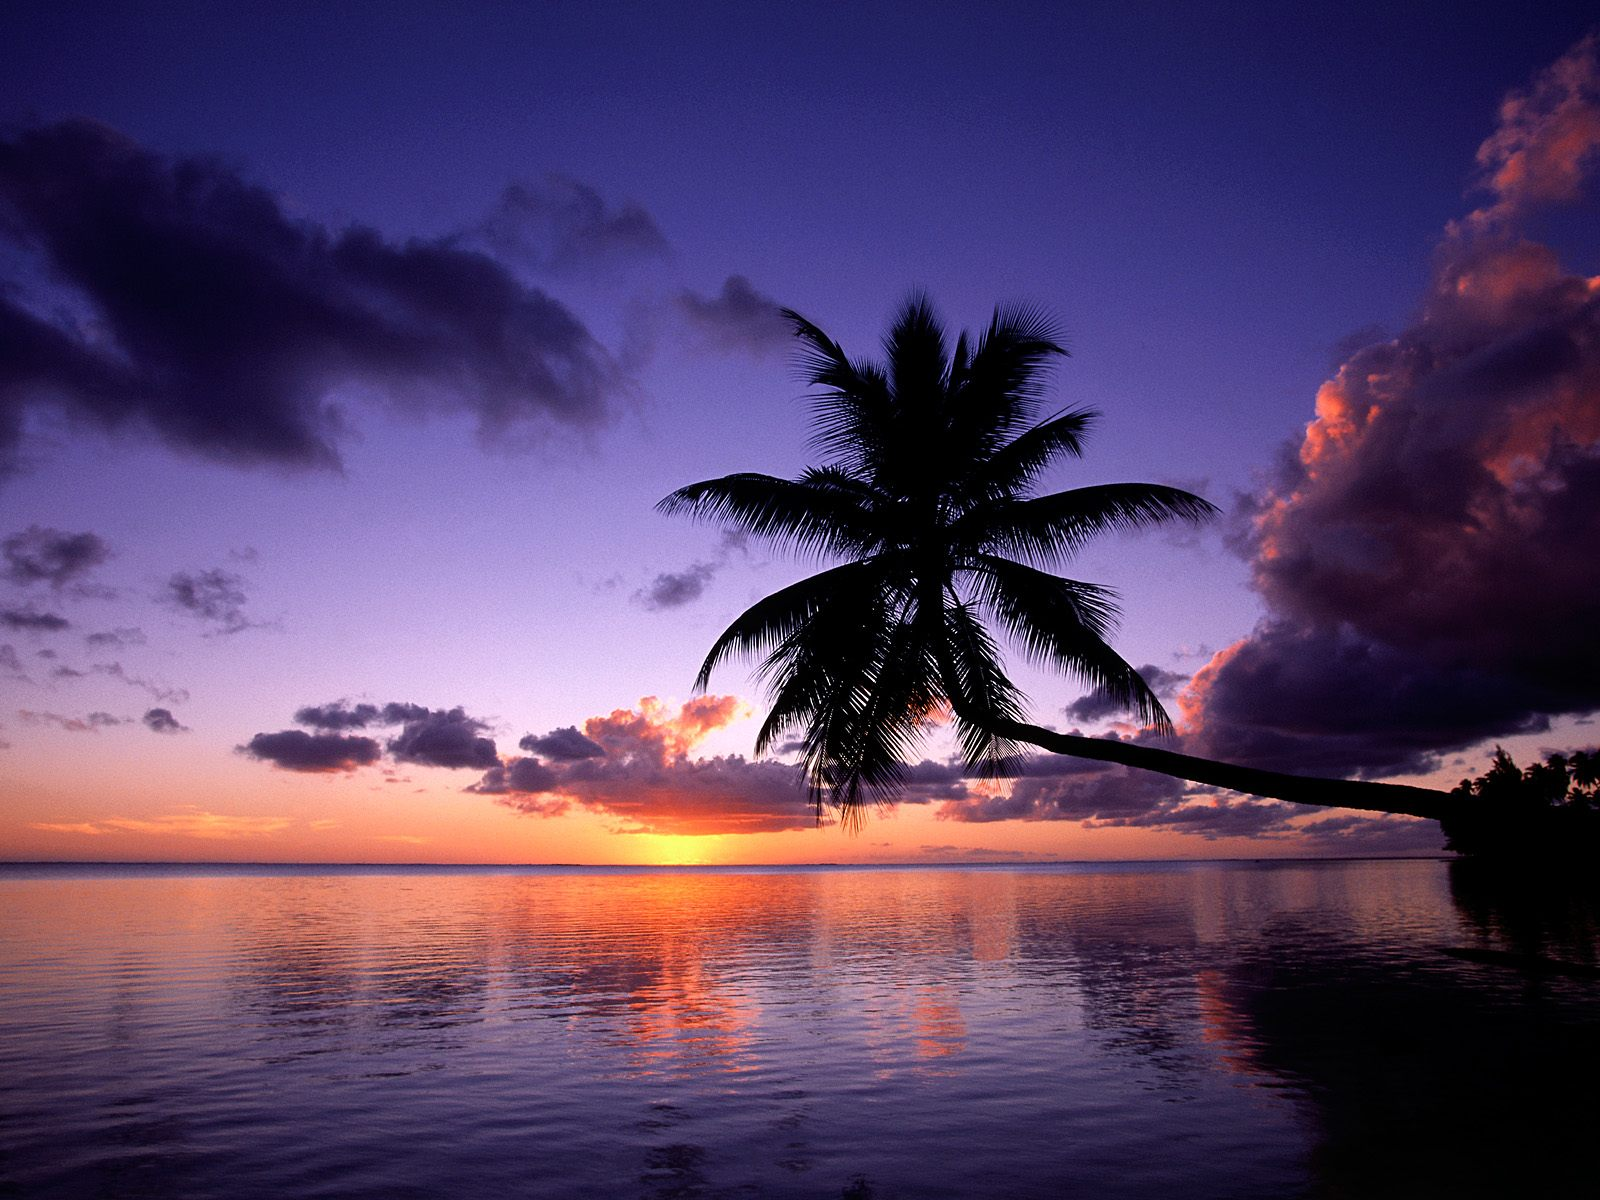 download 1600x1200 tropical island beach scenery sunset wallpaper 1600x1200